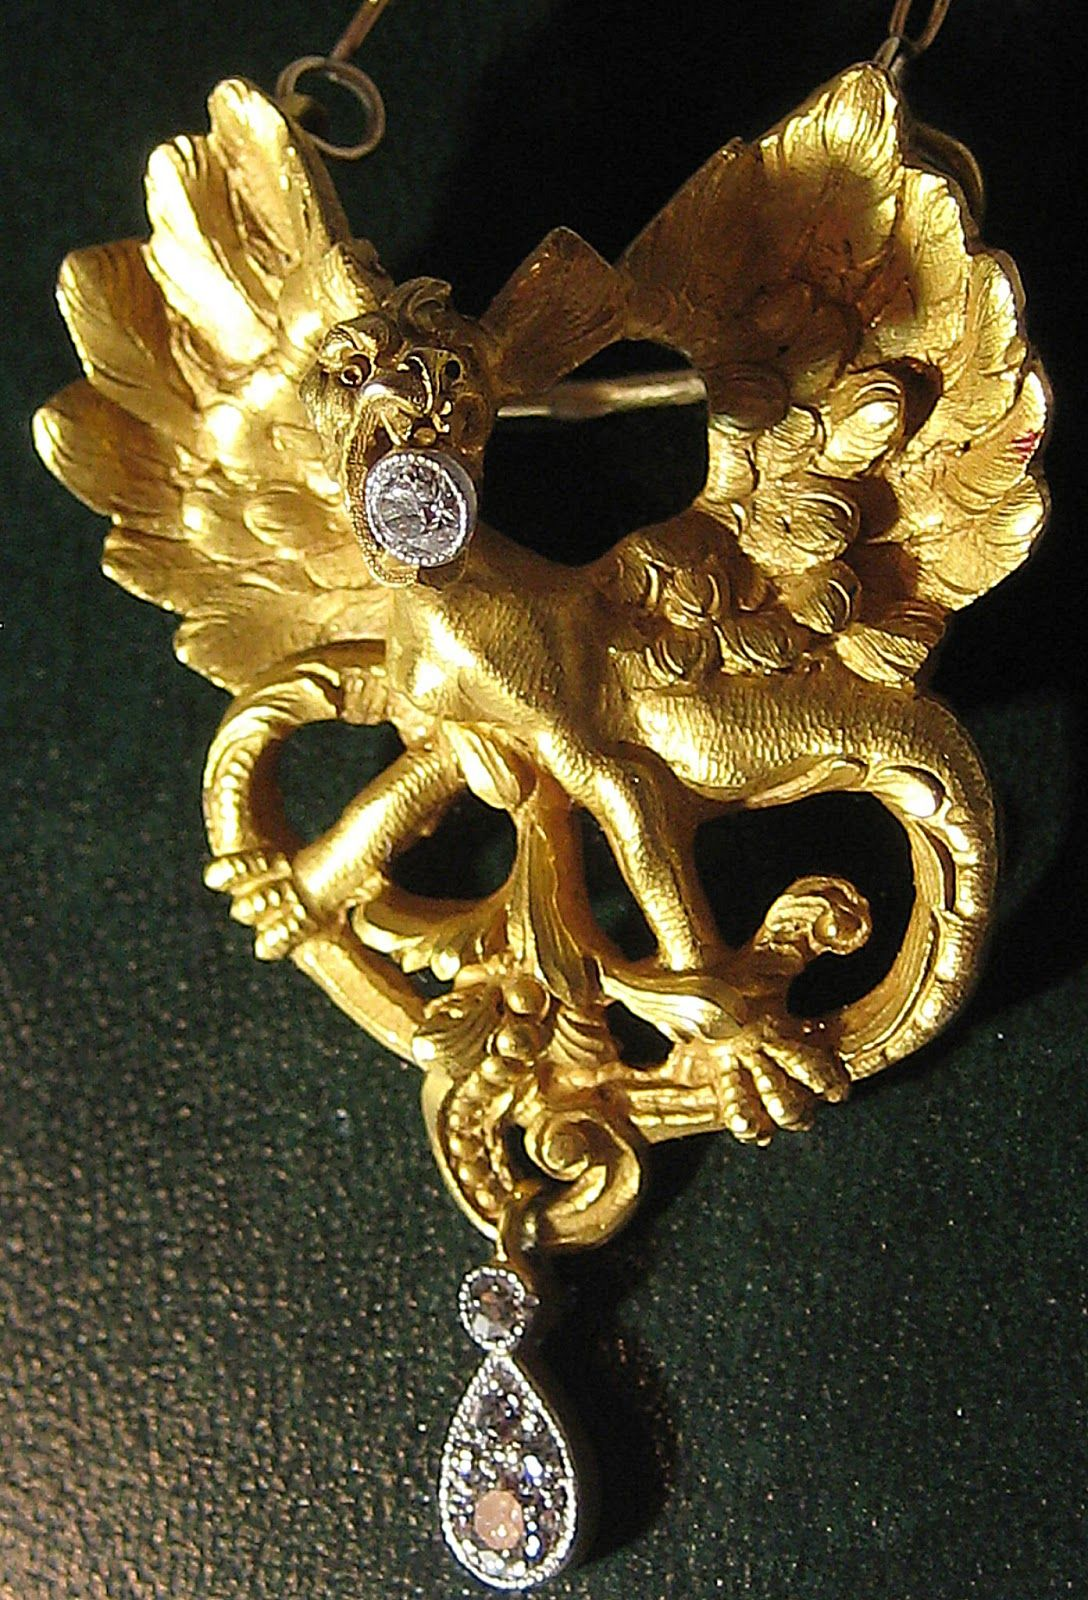 Amazing Art Nouveau pendant necklace at The Antique Guild in Old Town Alexandria, Virginia.   The gold pendant is in the shape of a rearing dragon holding diamonds in its mouth and with its tail. Via Diamonds in the Library.